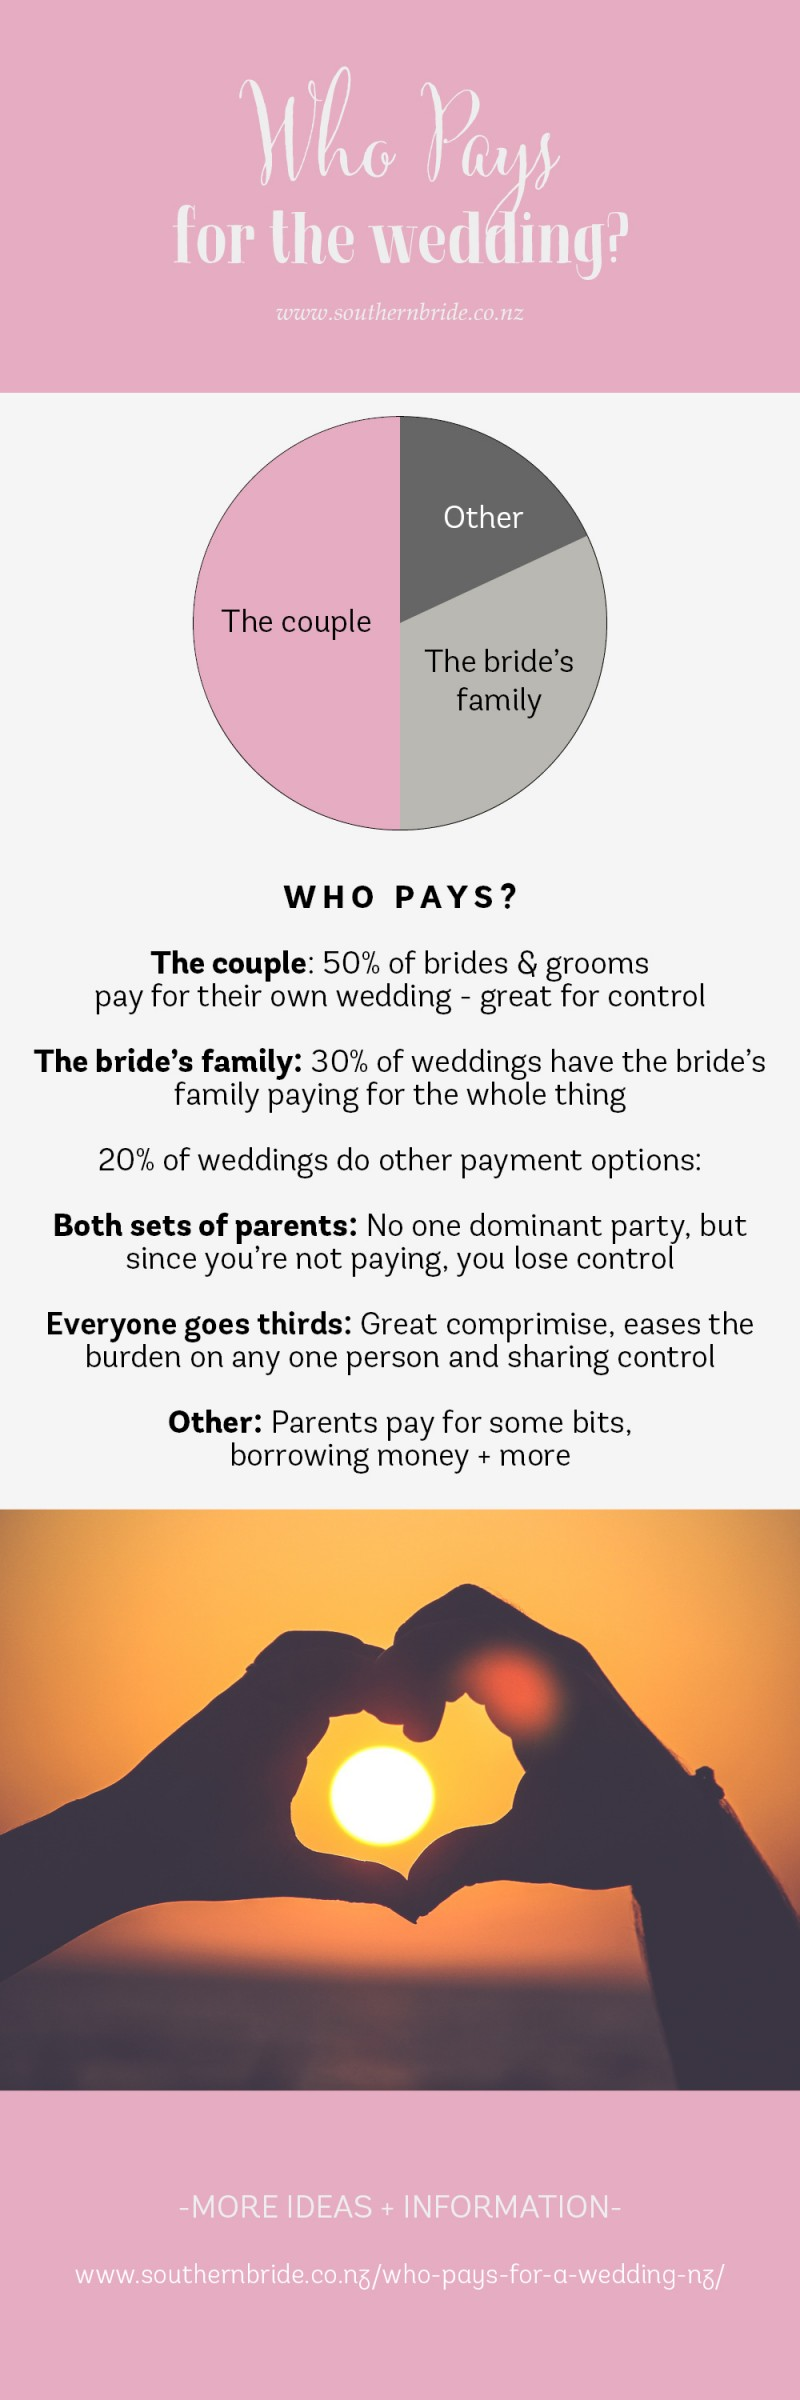 Who Pays For A Wedding In Nz Bride And Groom Pas Or Both